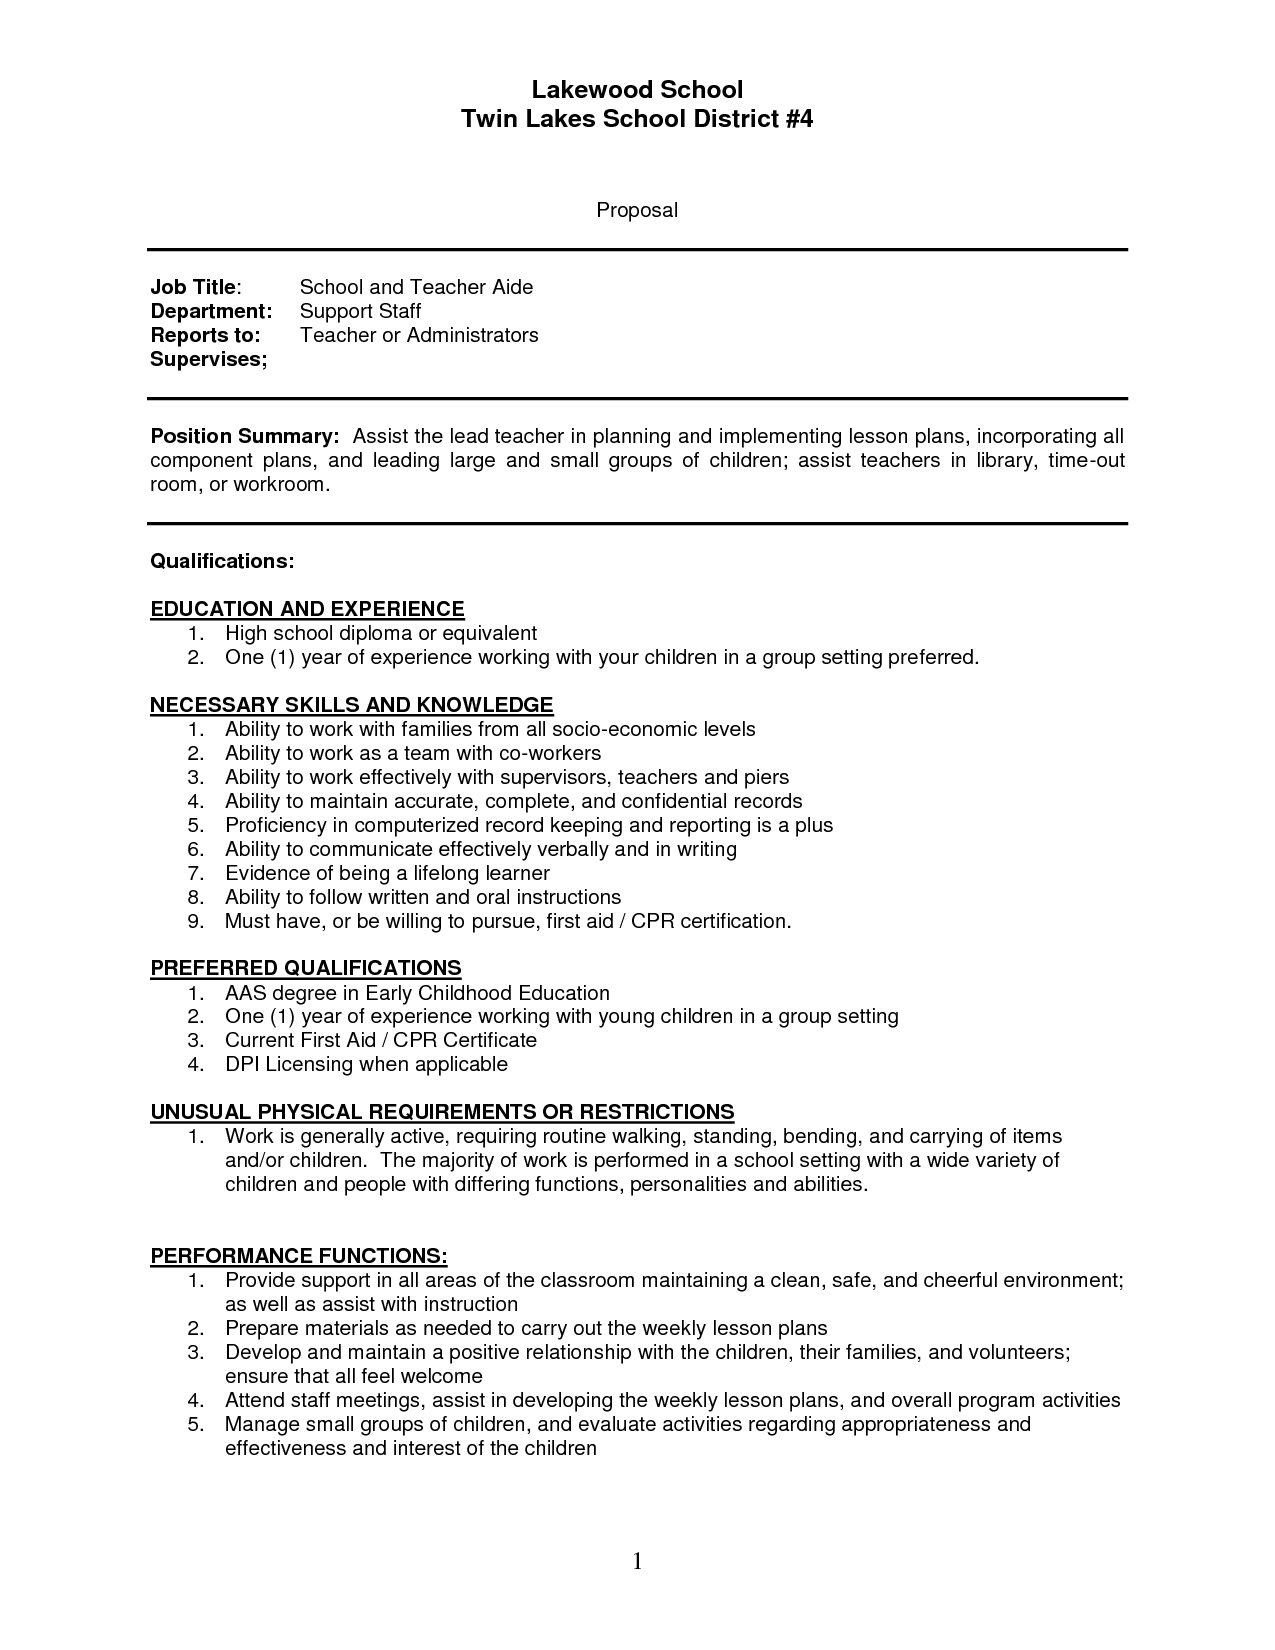 Teacher Assistant Sample Resume Of Teachers Aides